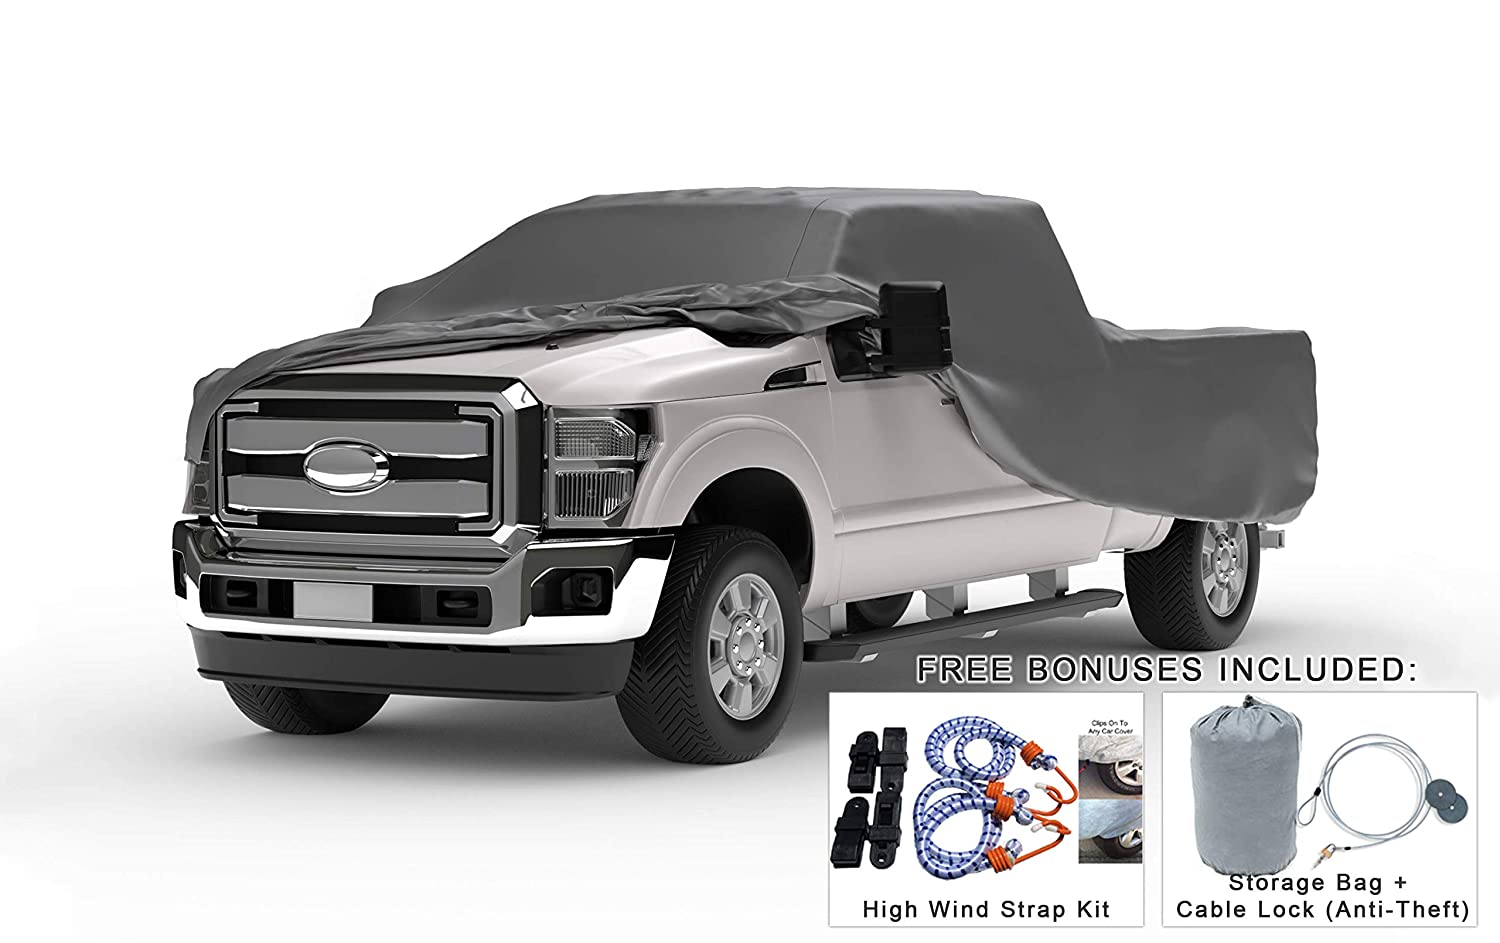 Dodge 2500 Mega Cab >> Weatherproof Truck Cover Compatible With 2010 2019 Dodge Ram 2500 Mega Cab 6 3 Ft Bed 5l Outdoor Indoor Protect From Rain Snow Hail Sun